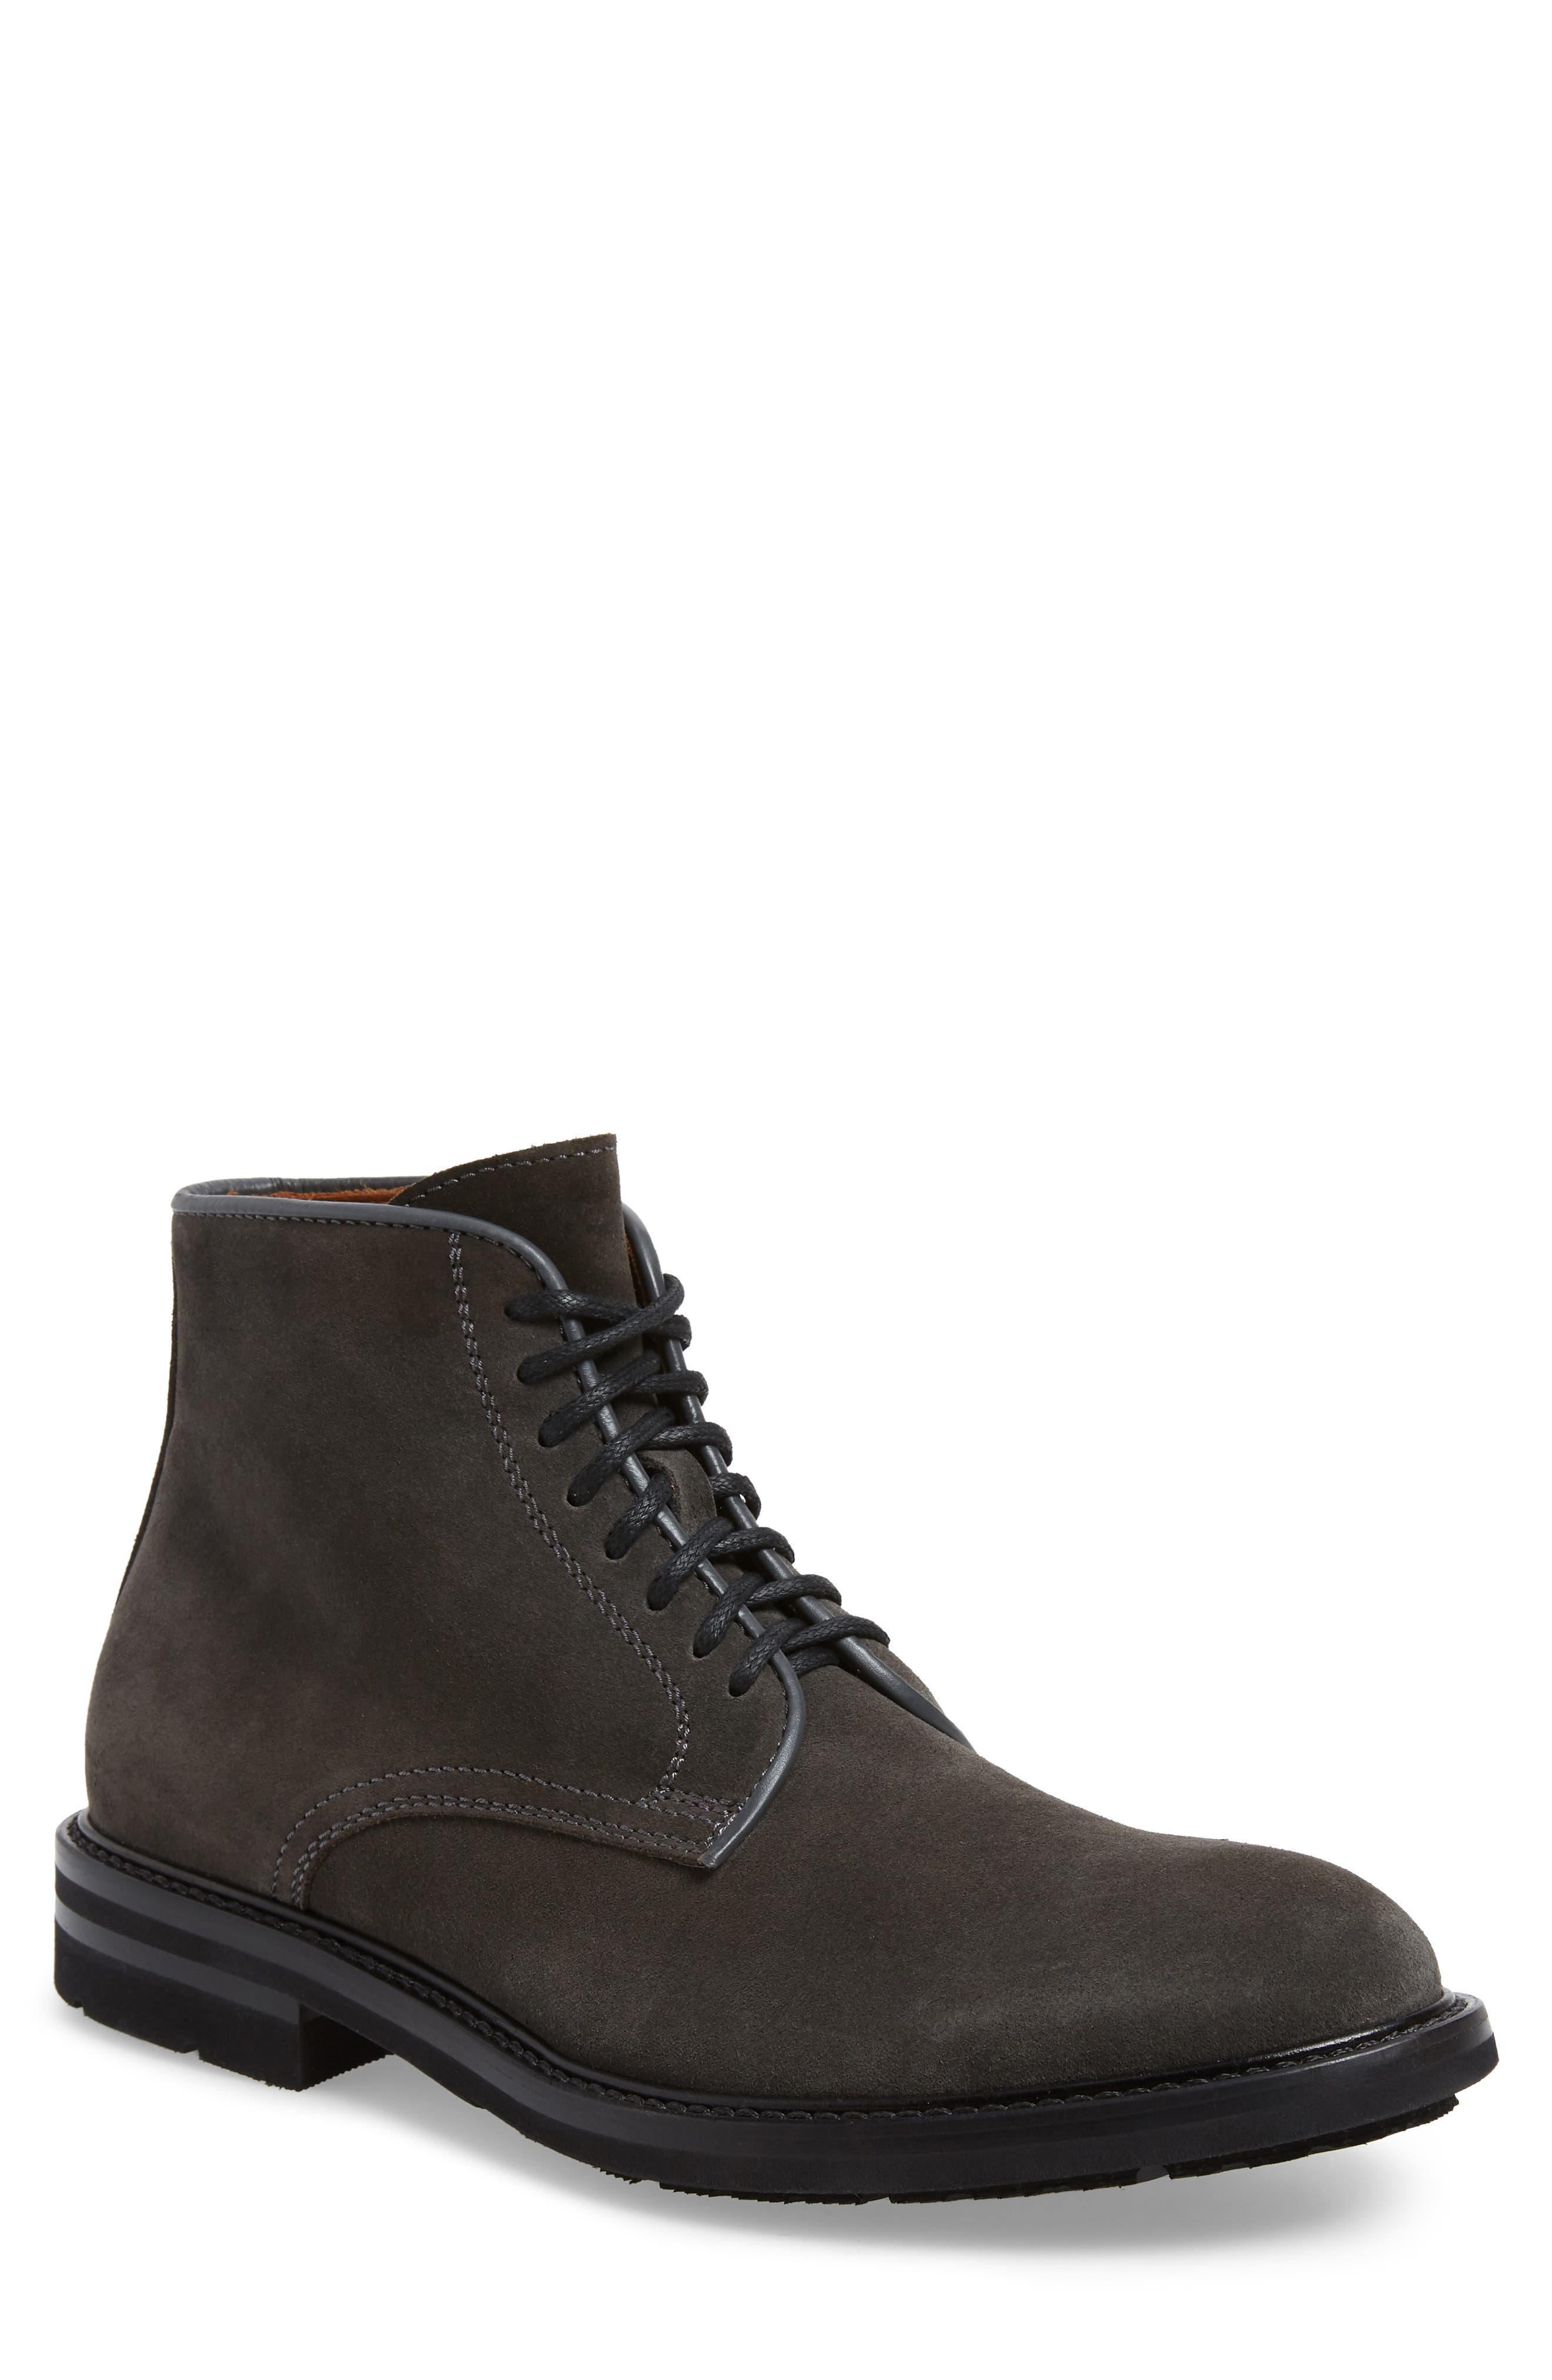 AQUATALIA, Renzo Weatherproof Lace-Up Boot, Main thumbnail 1, color, DARK CHARCOAL